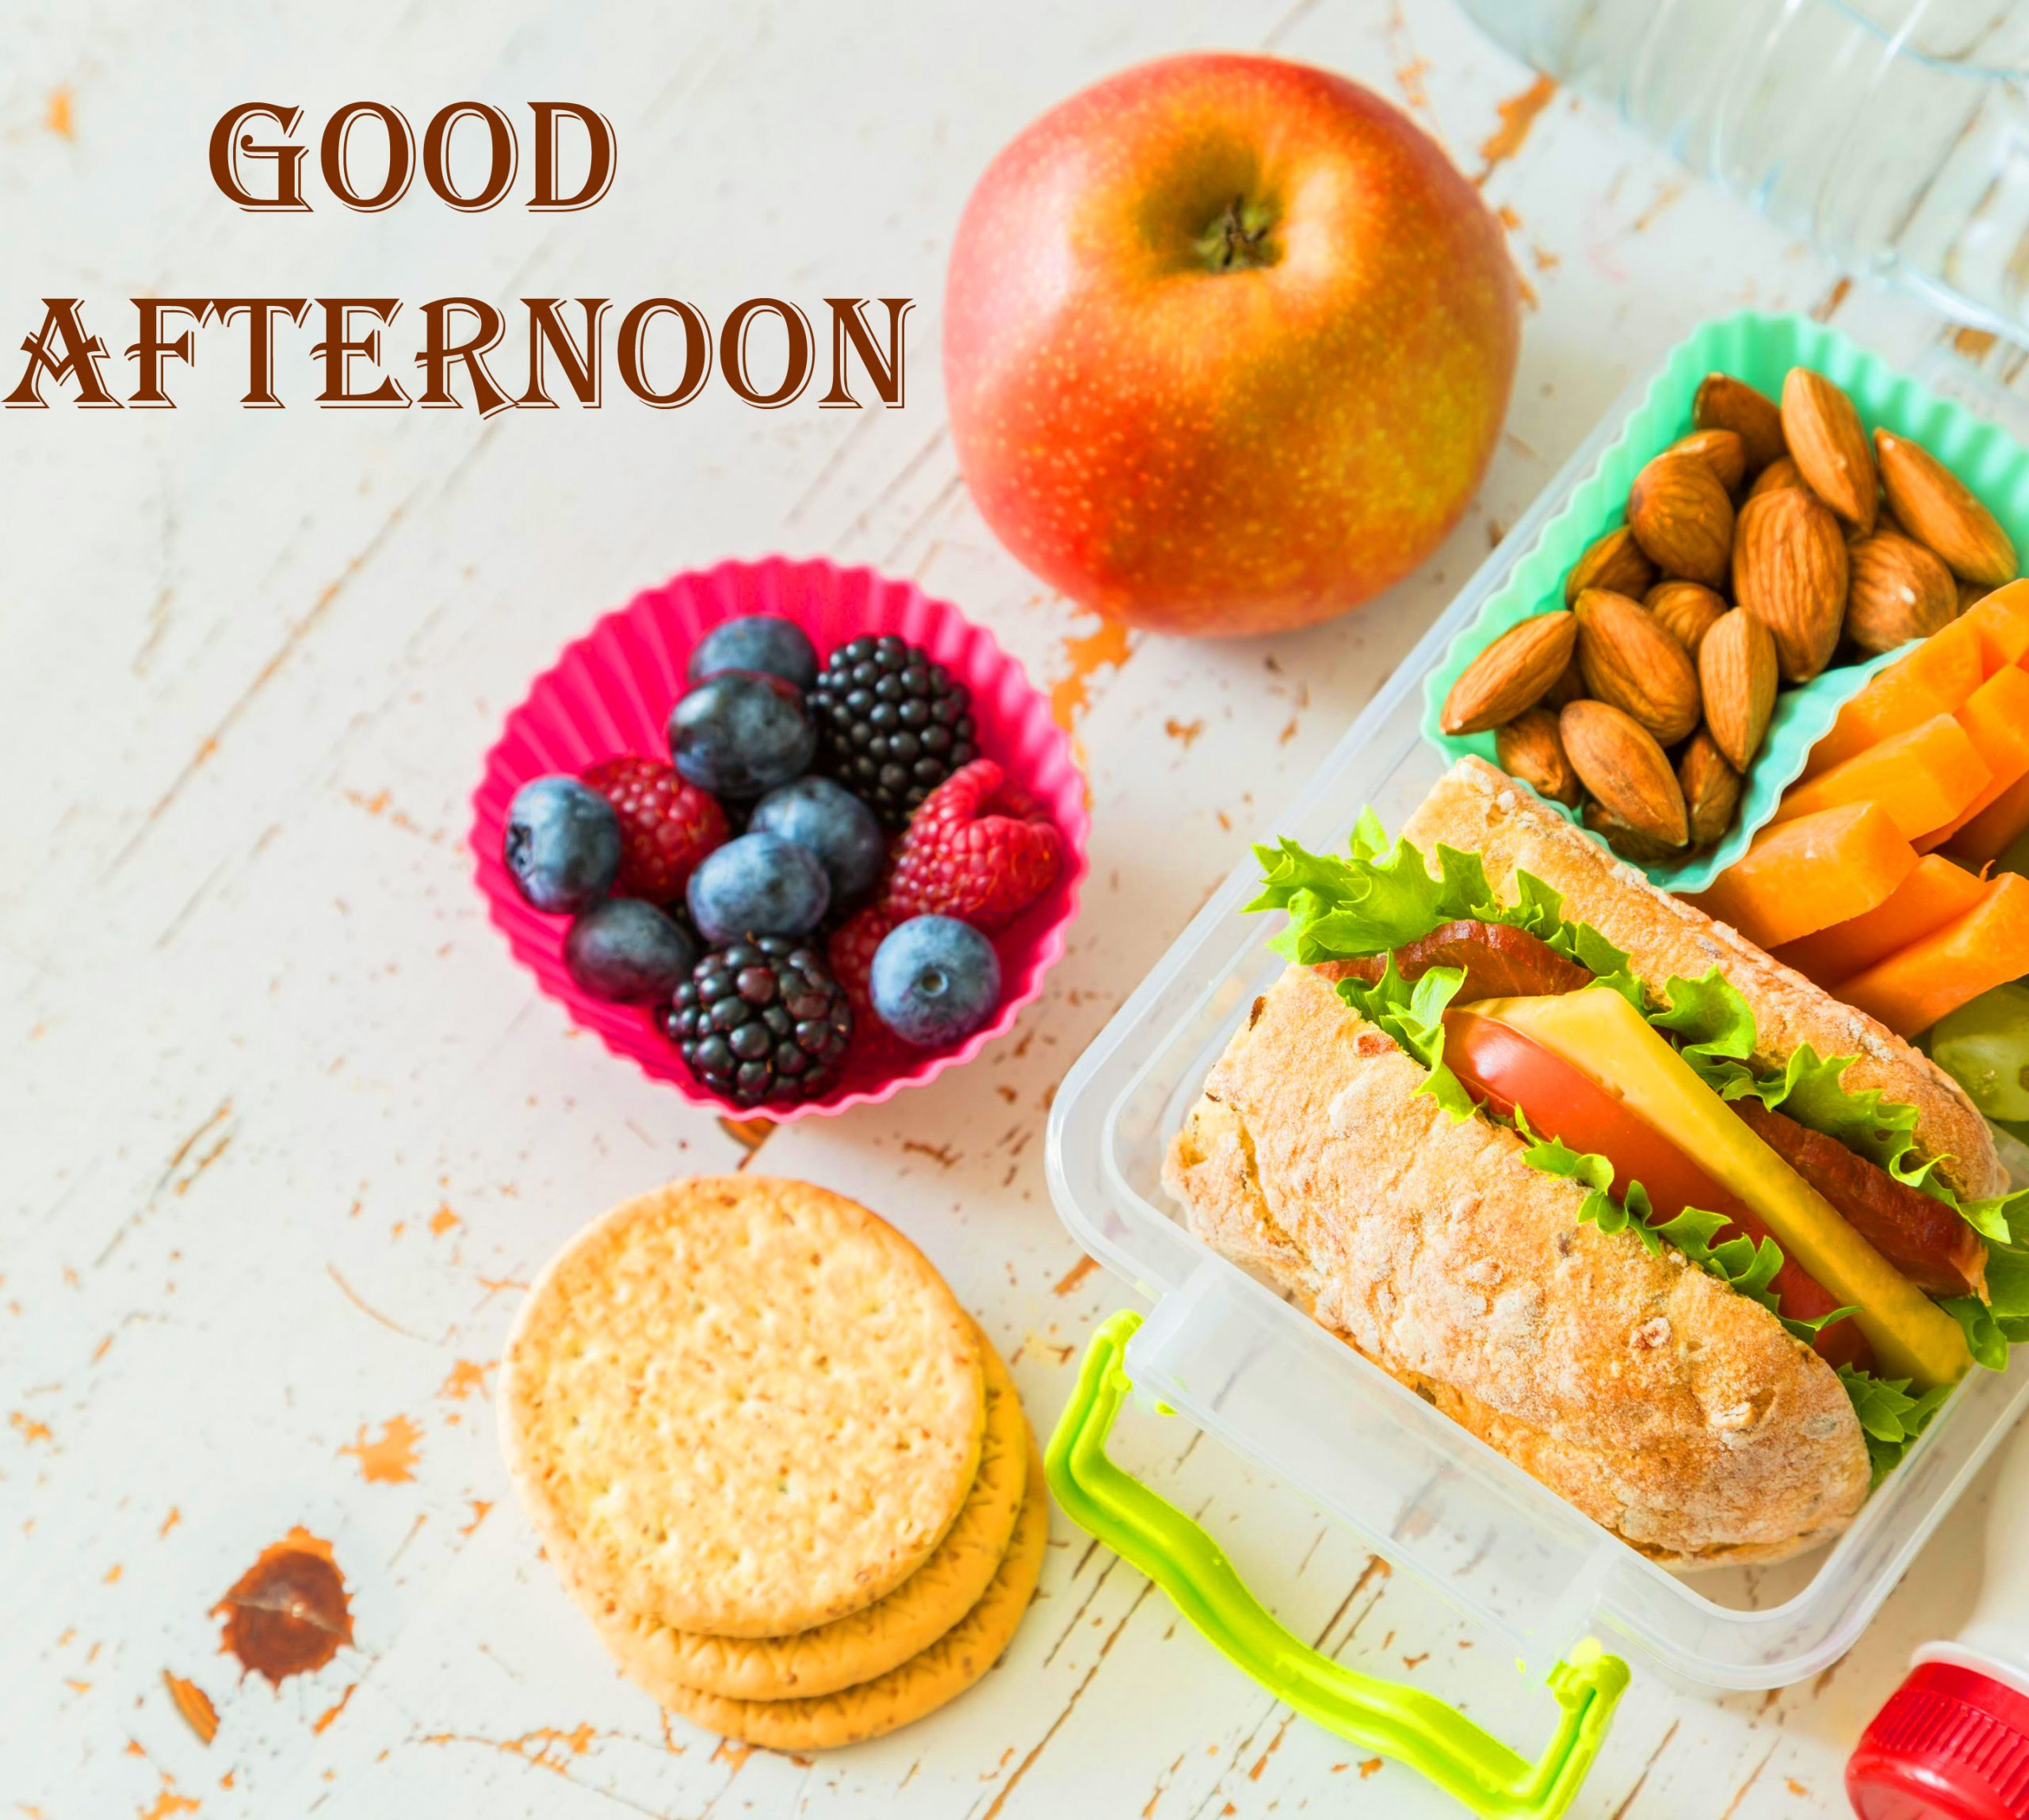 School Lunch Good Afternoon Photo